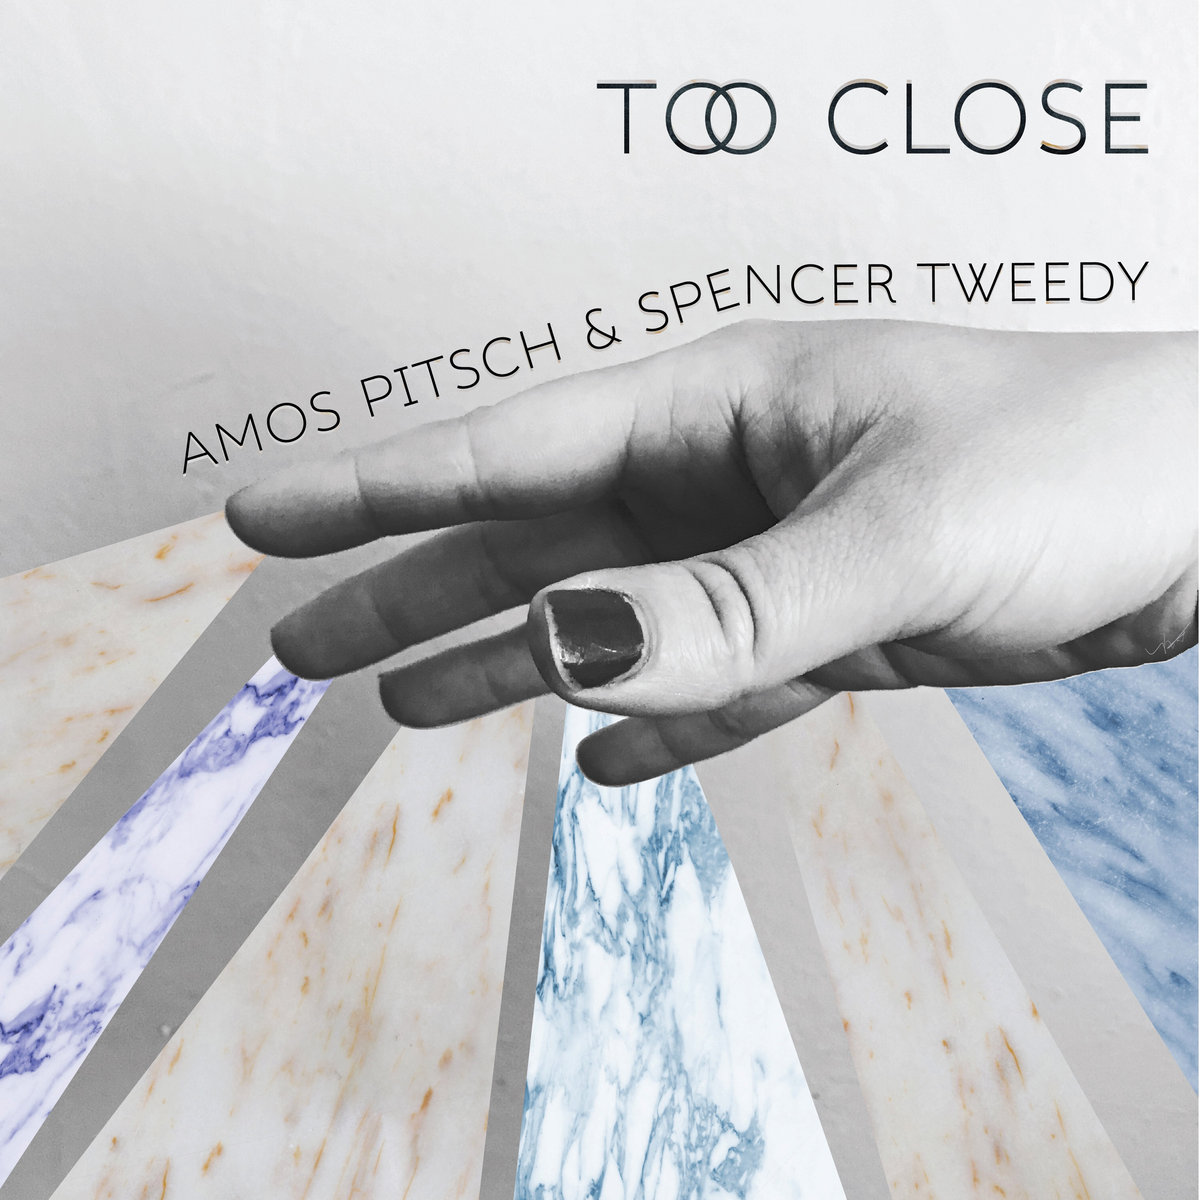 Too Close artwork